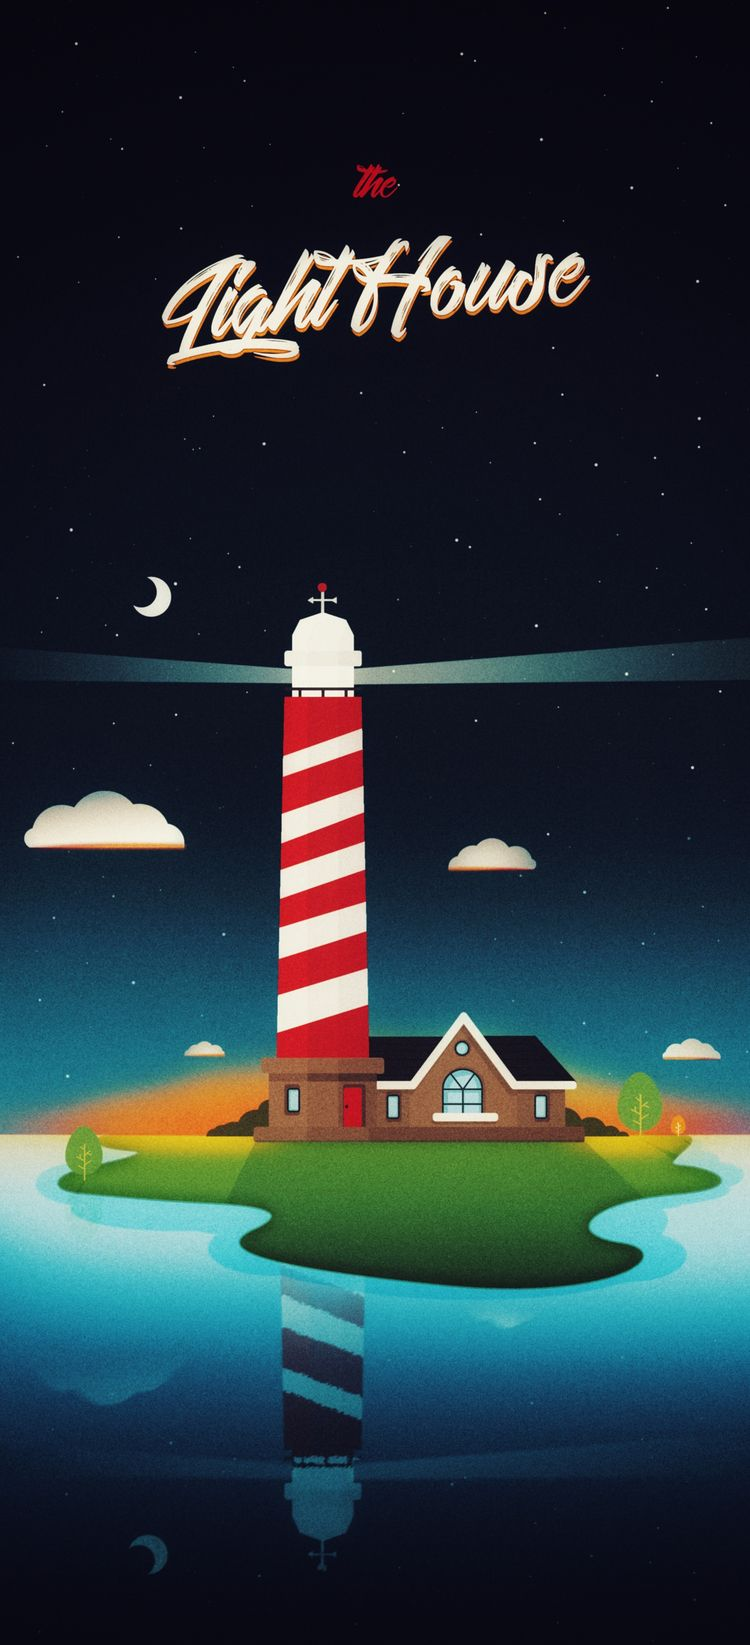 LightHouse - illustration, Sketch - emrahserdaroglu | ello